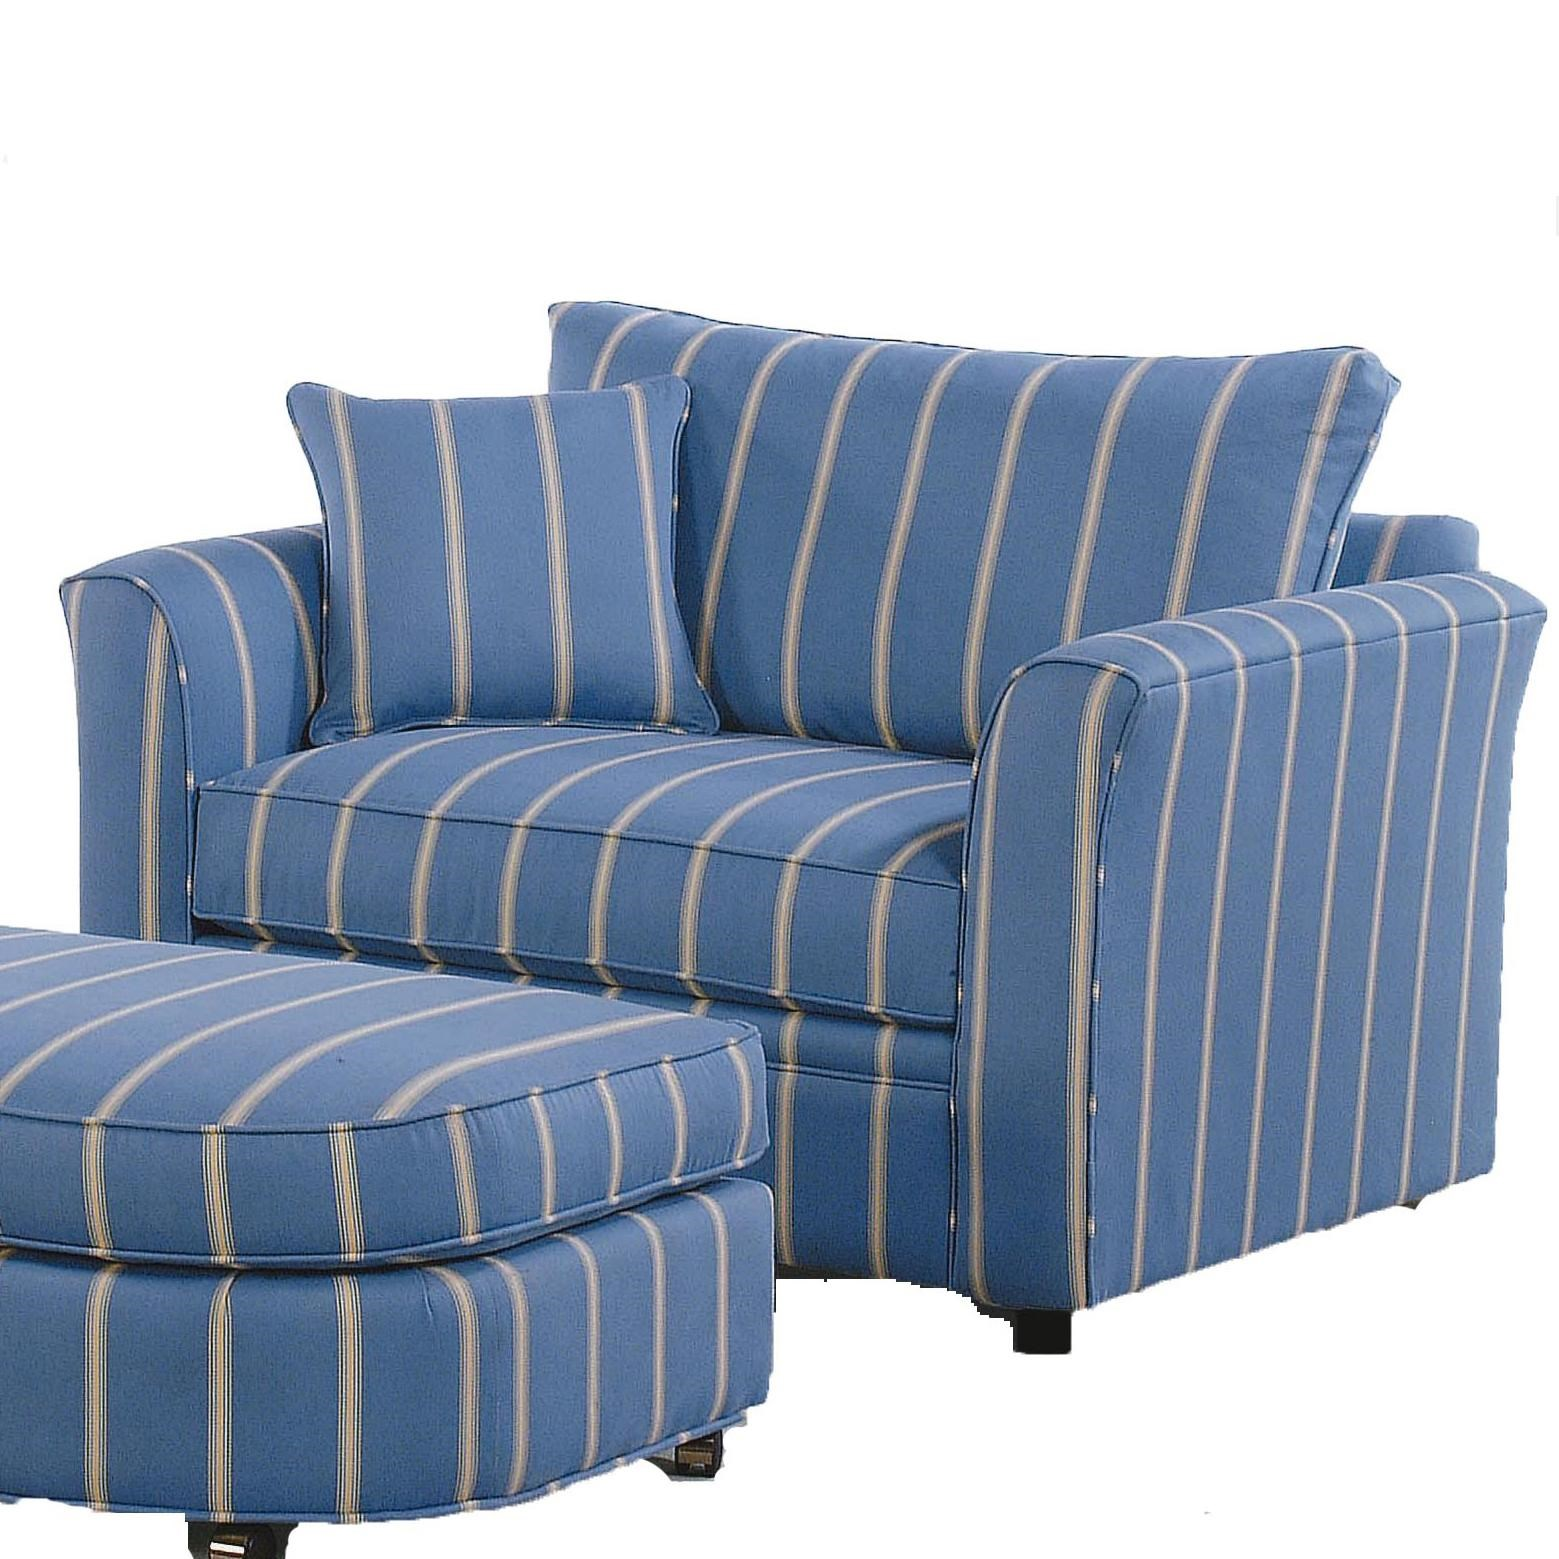 Blue Chair And A Half Braxton Culler Bridgeport 560 014 Casual Chair And A Half With